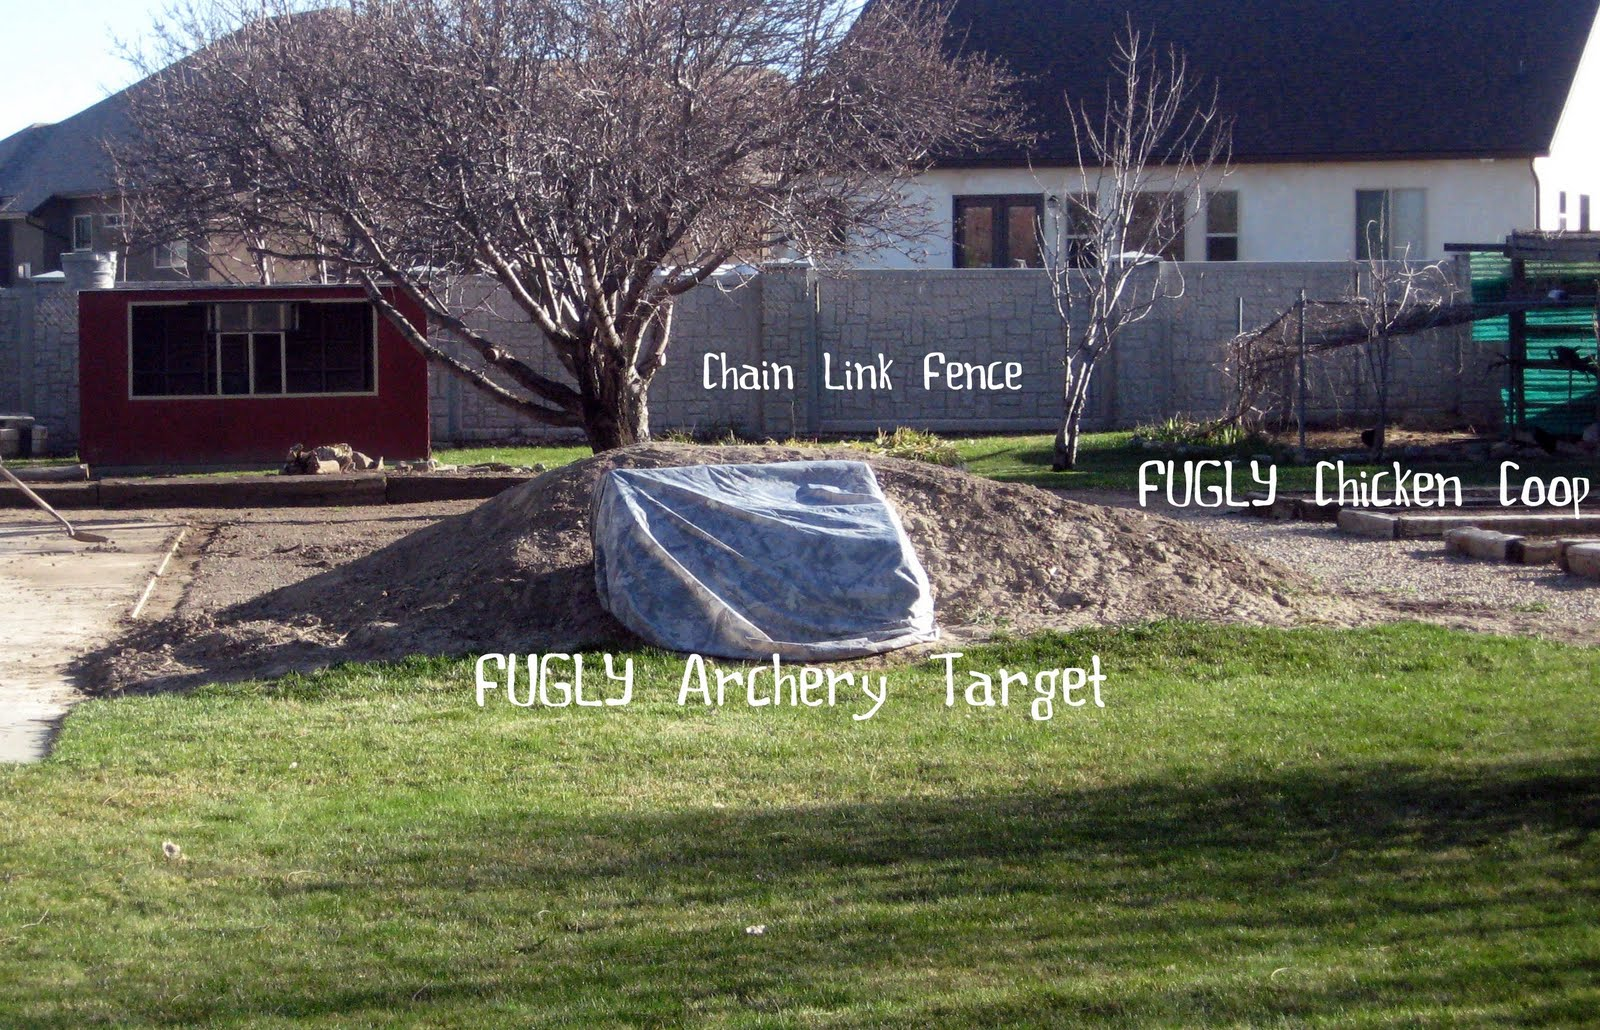 Small Backyard Archery Range : In a recent post I showed you a small part of the yard with all of the